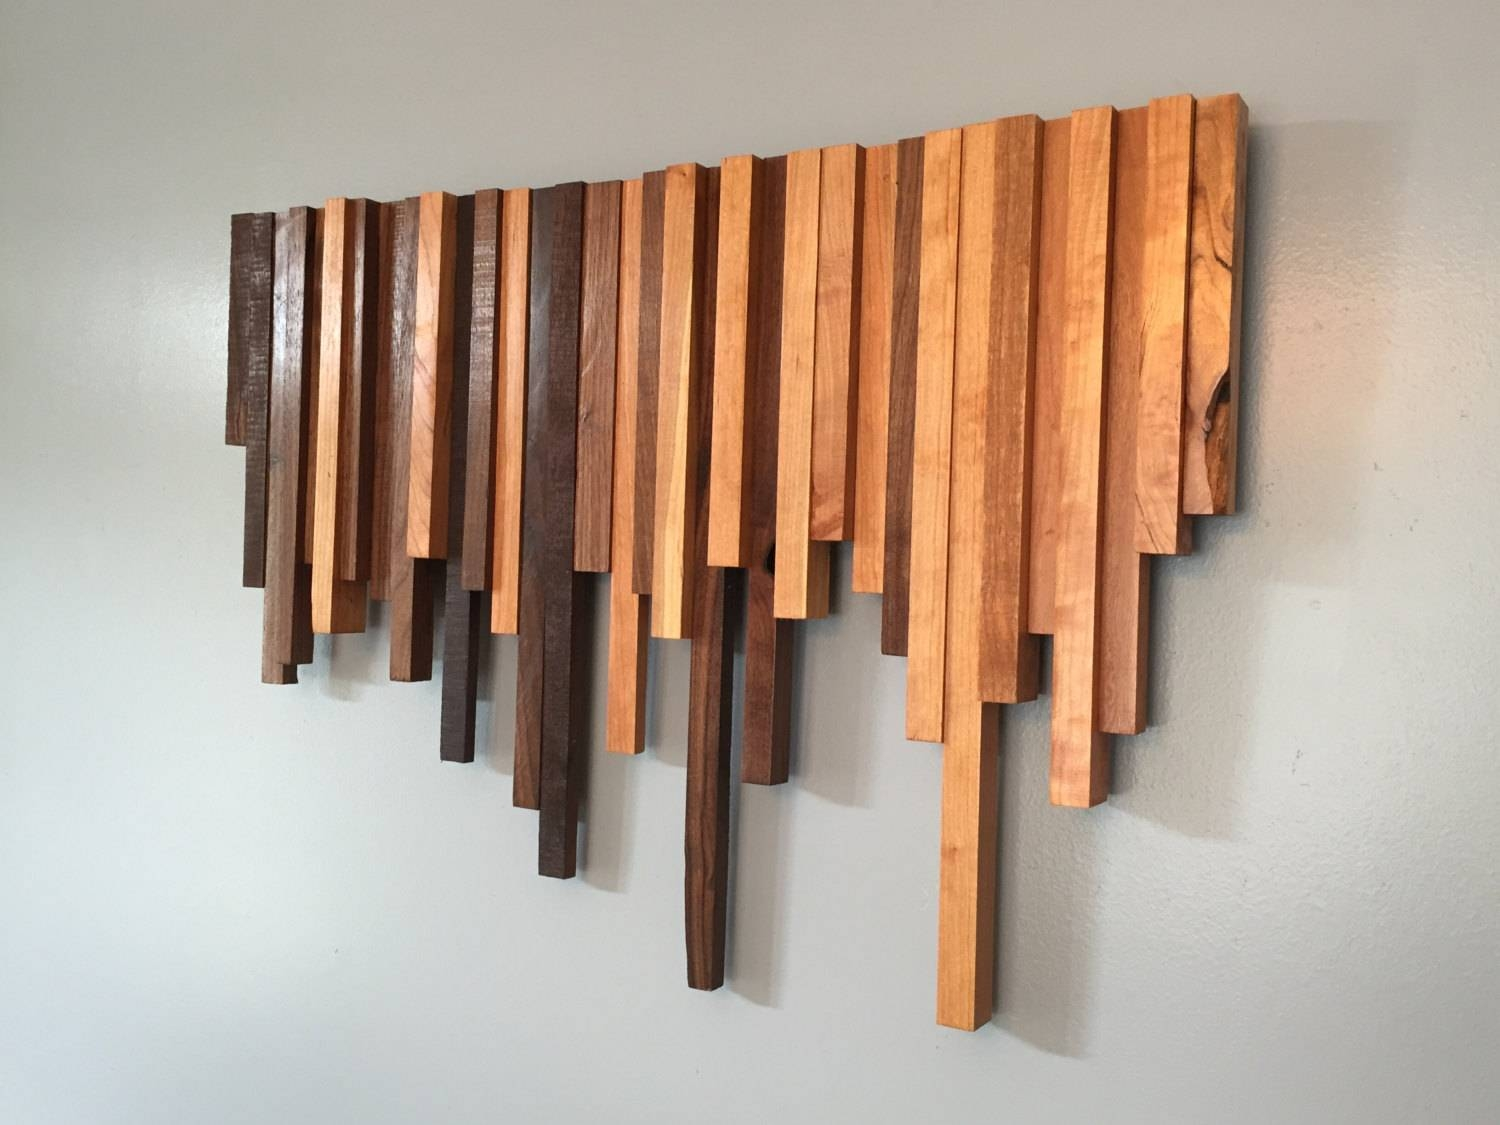 Wood Wall Art Cherry And Walnut • Recous Inside Most Recent Wall Art On Wood (View 16 of 20)